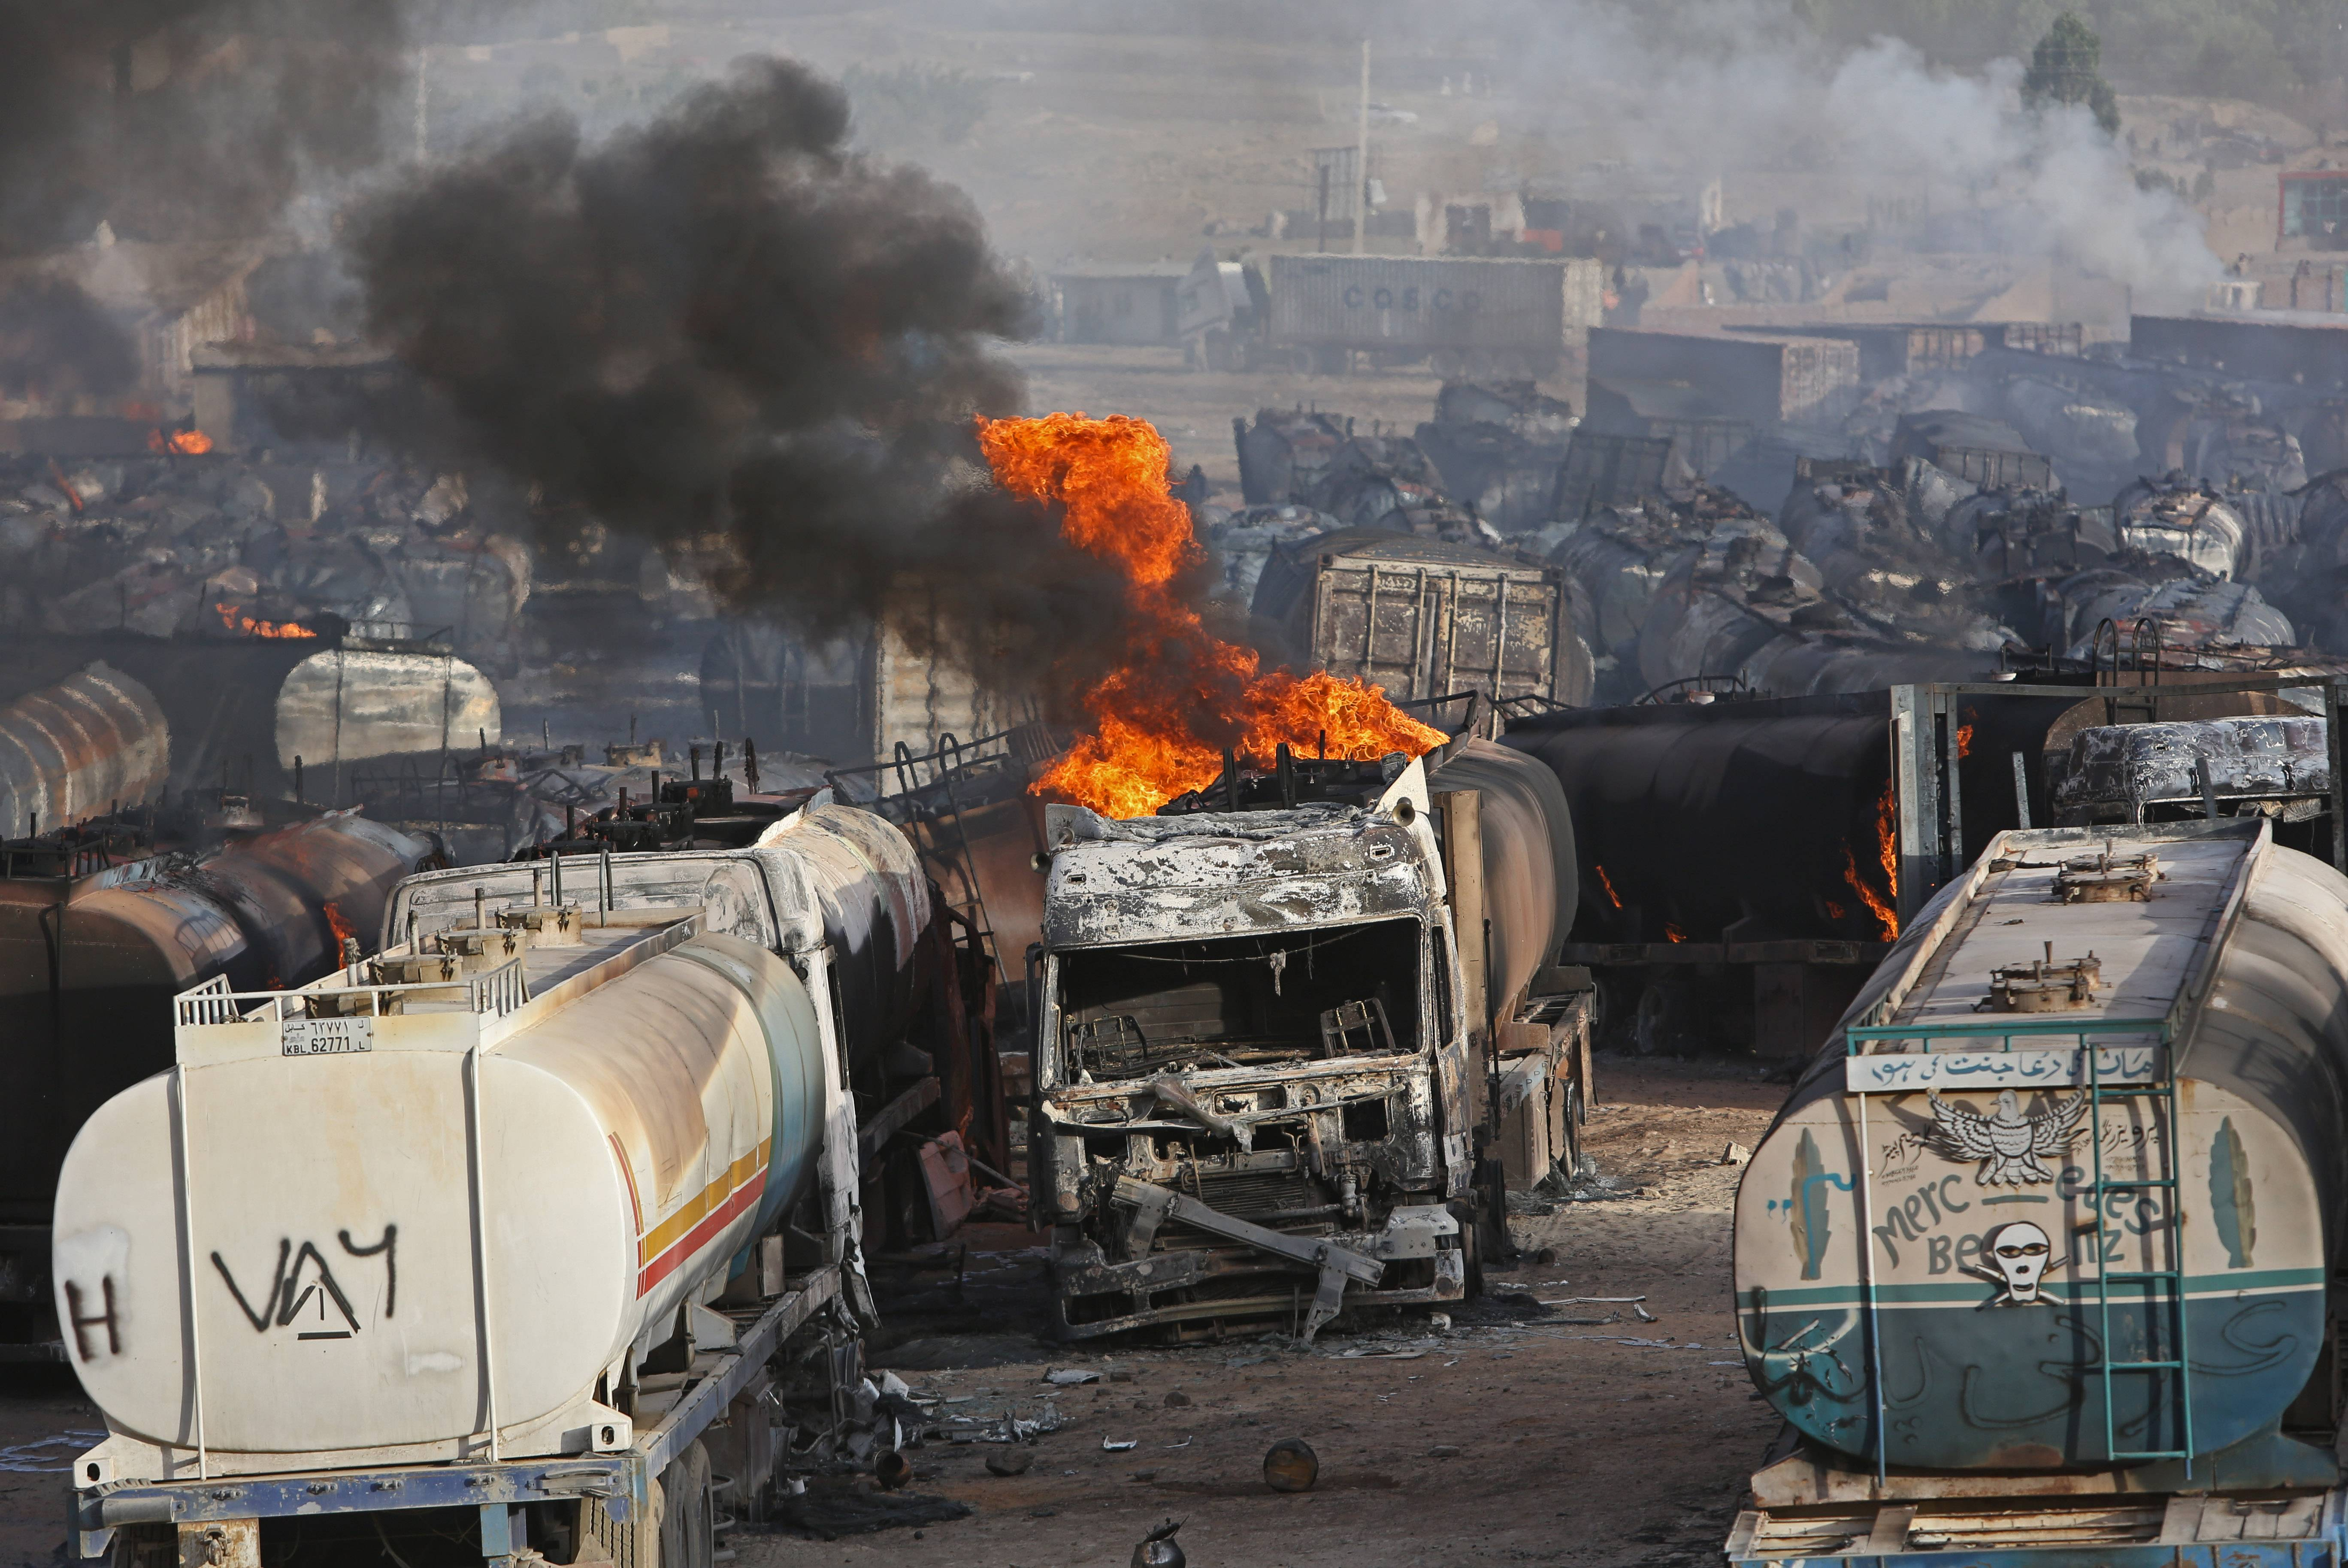 Flames rise from oil tankers after an attack claimed by Taliban militants on the outskirts of Kabul, Afghanistan, Saturday, July 5. An Afghan security official says at least 400 fuel tankers caught fire late Friday night in a parking lot in the outskirts of Kabul.